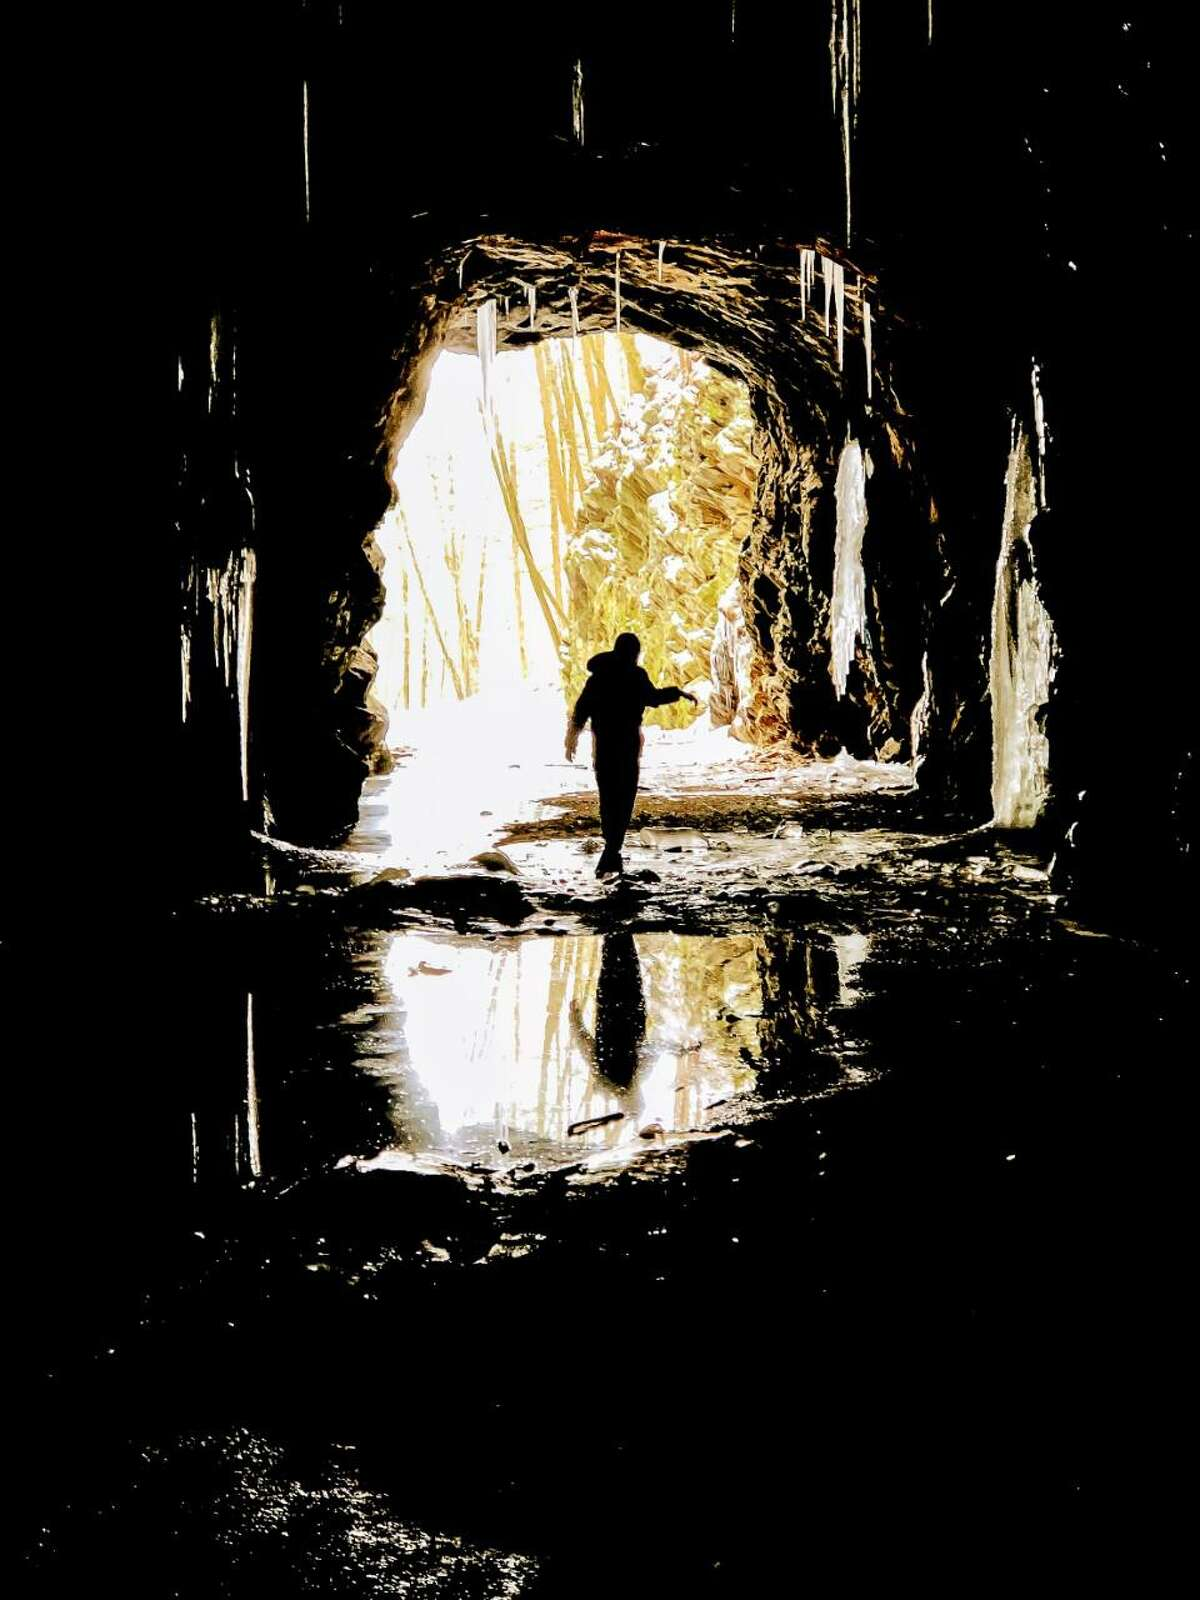 Amanda Prather's photo, The Light at the End of a Tunnel, won first place in the youth division at the Focus '19 photo competition sponsored by the Wilton Arts Council.